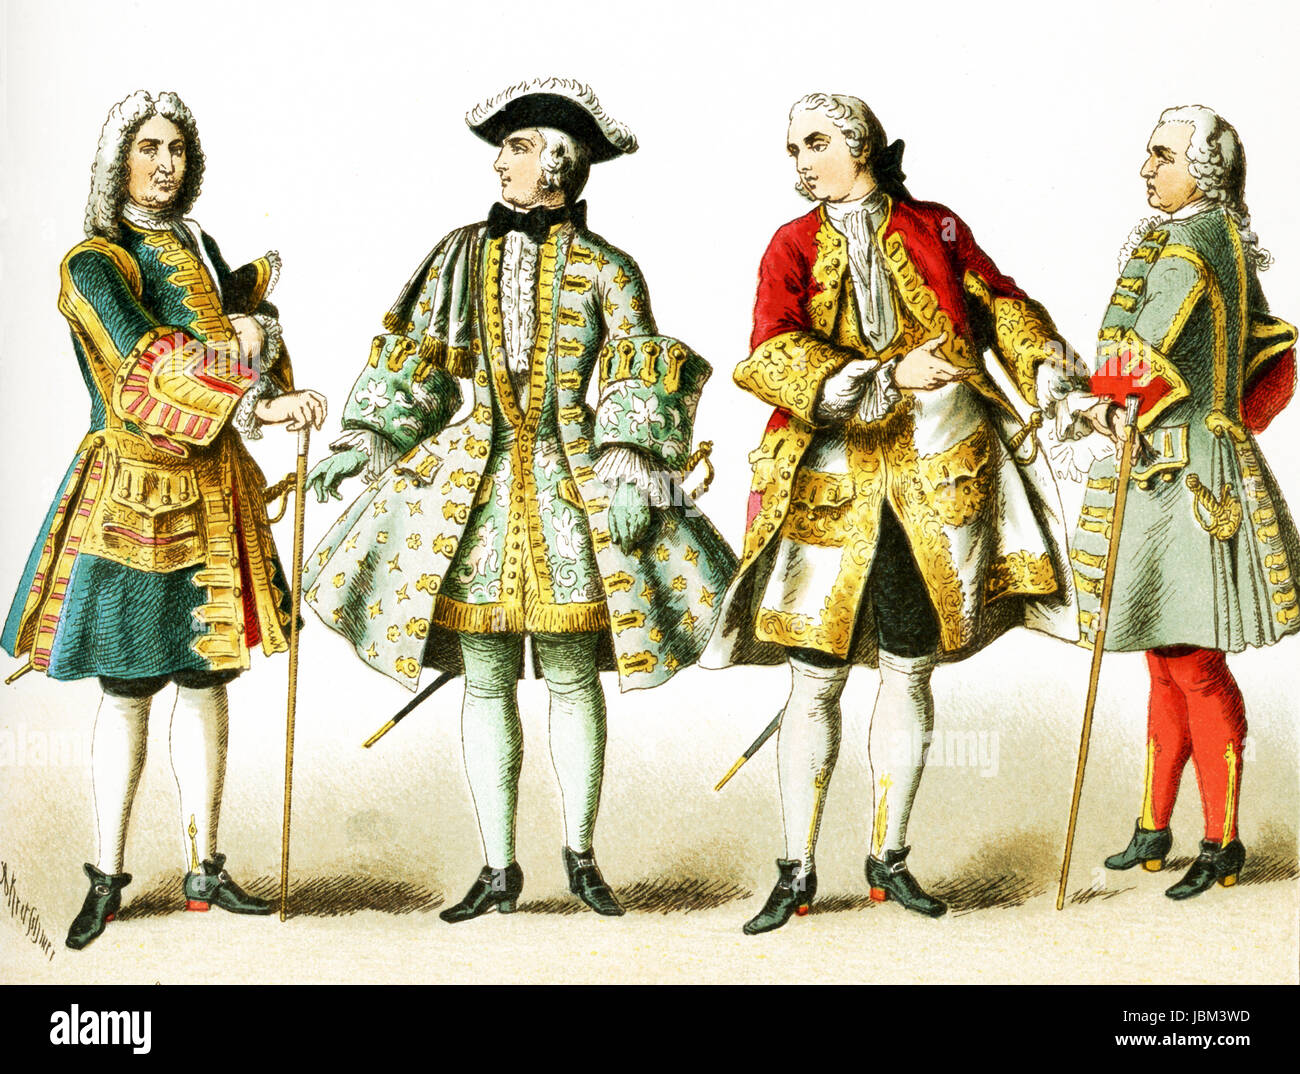 The figures represented here are French people from 1700 to 1750 A.D. They  are, from left to right: four French men of rank. The illustration dates to  1882.